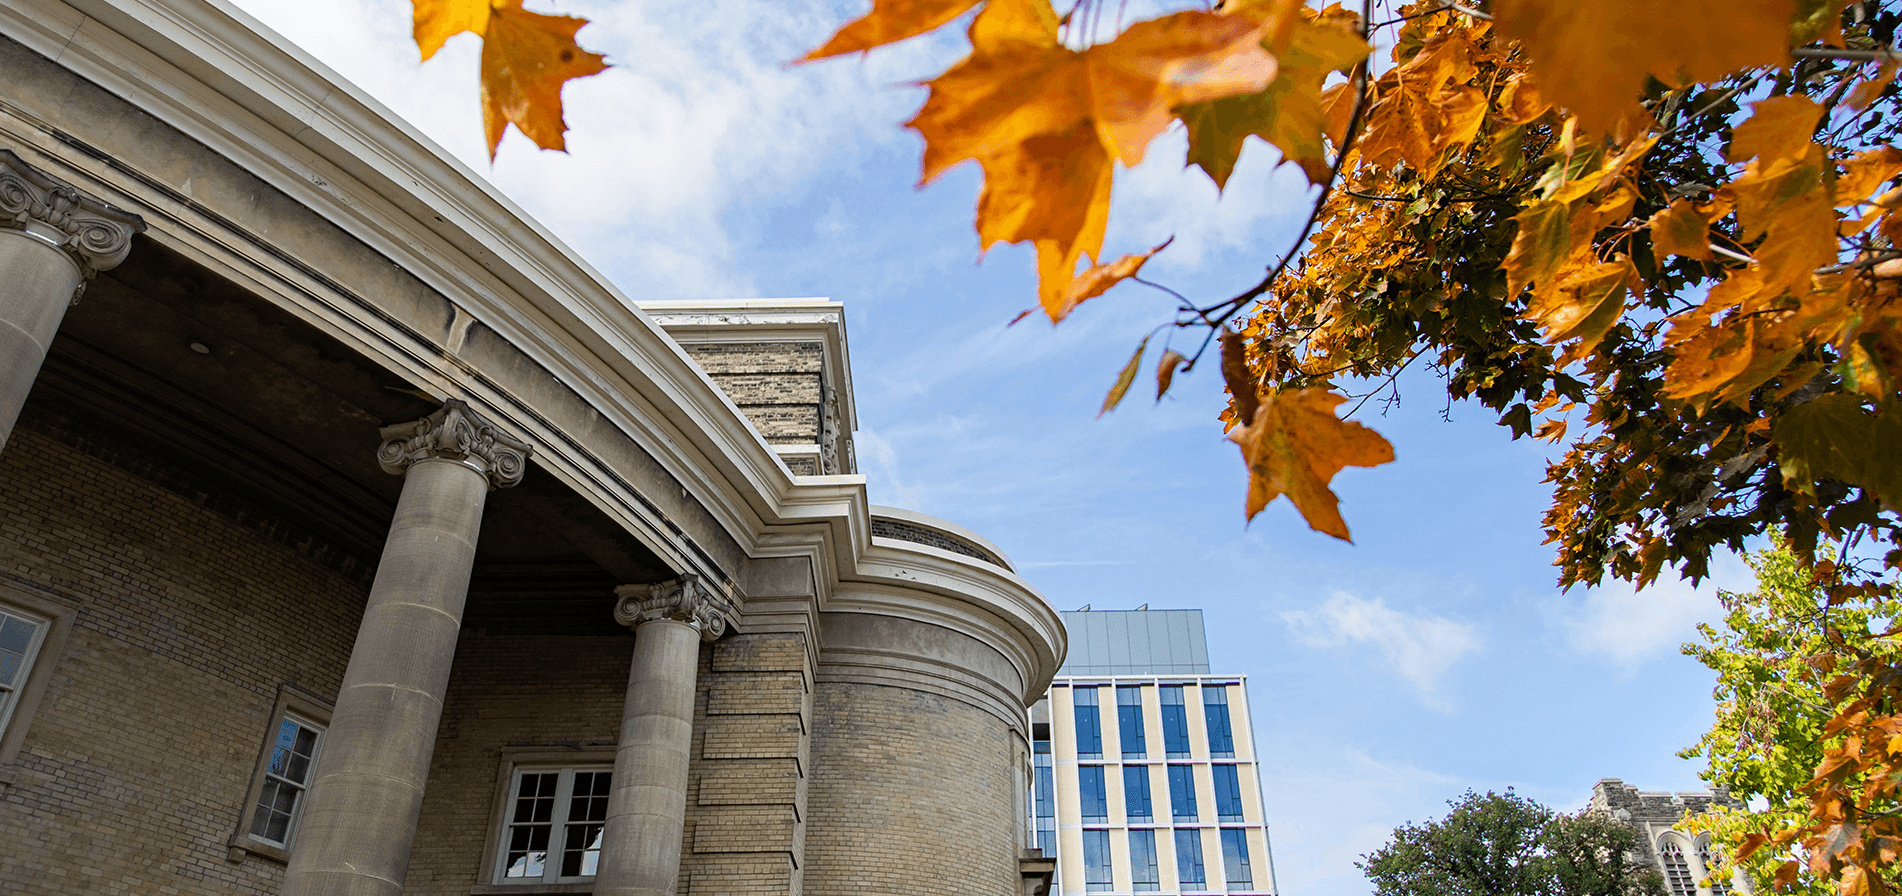 An autumn photo of Convocation Hall with red leaves in the foreground.